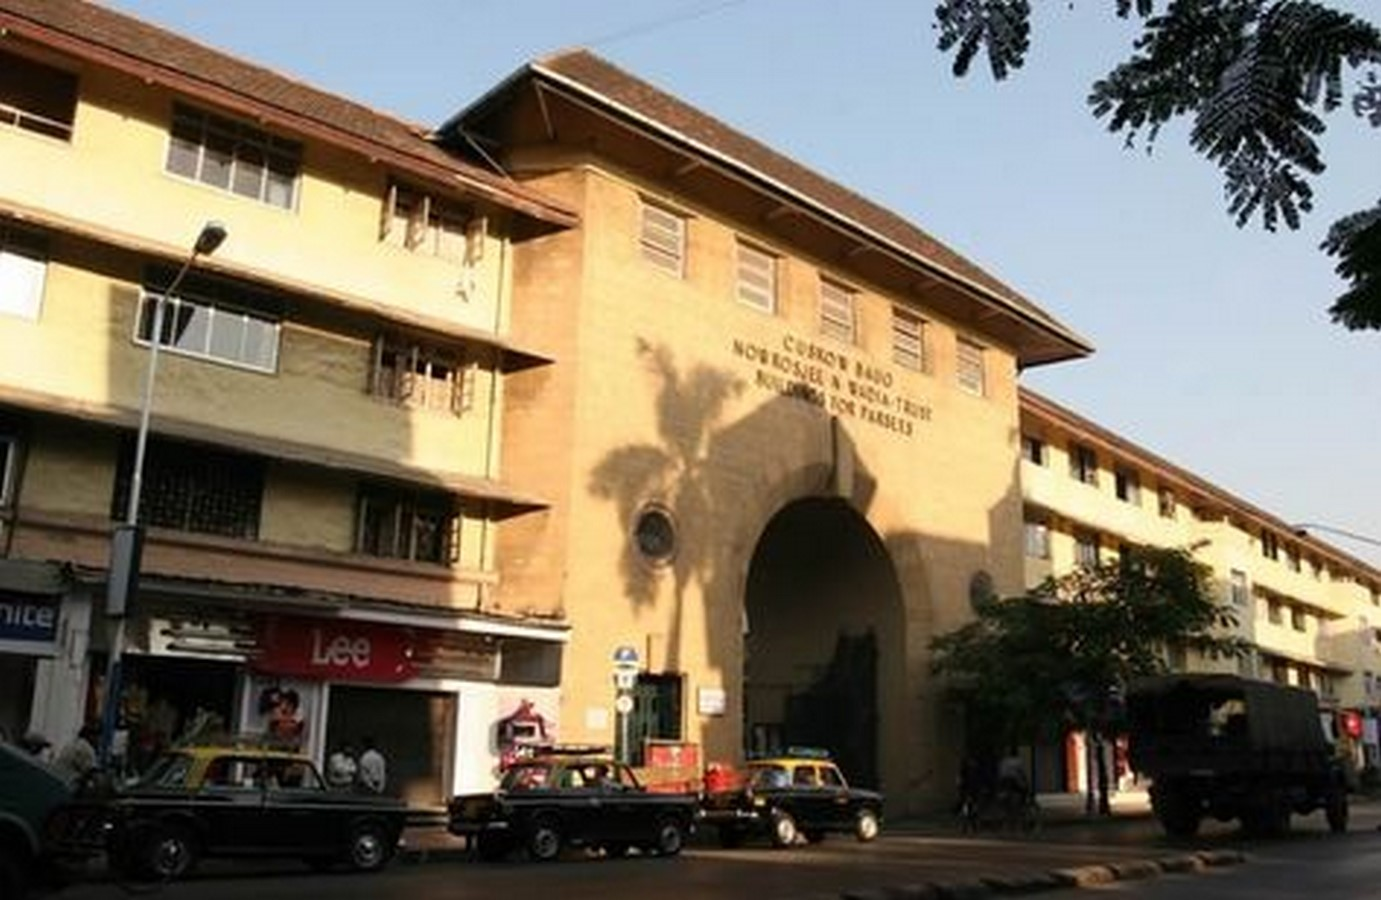 The Parsi colonies of Mumbai- understanding the contrast in social architecture of Mumbai - Sheet5